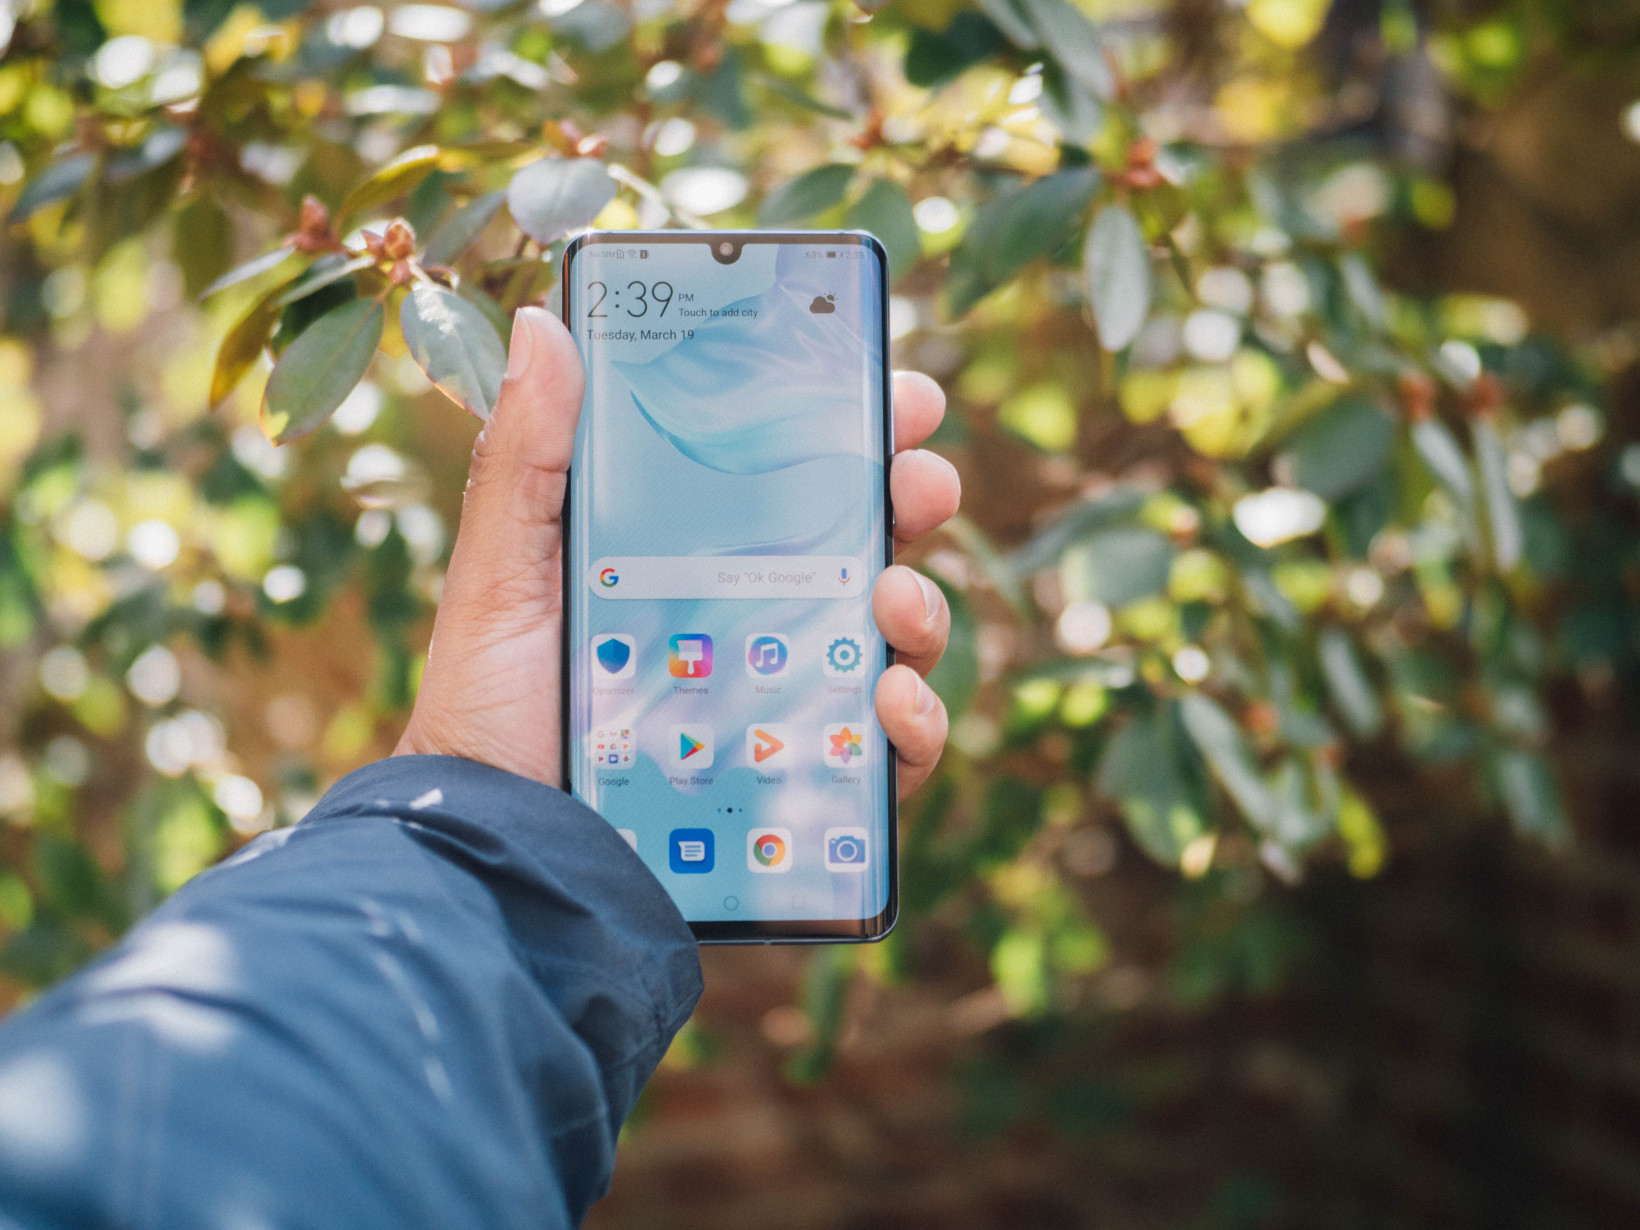 Here's why the HUAWEI P30 Pro's camera could redefine smartphone photography